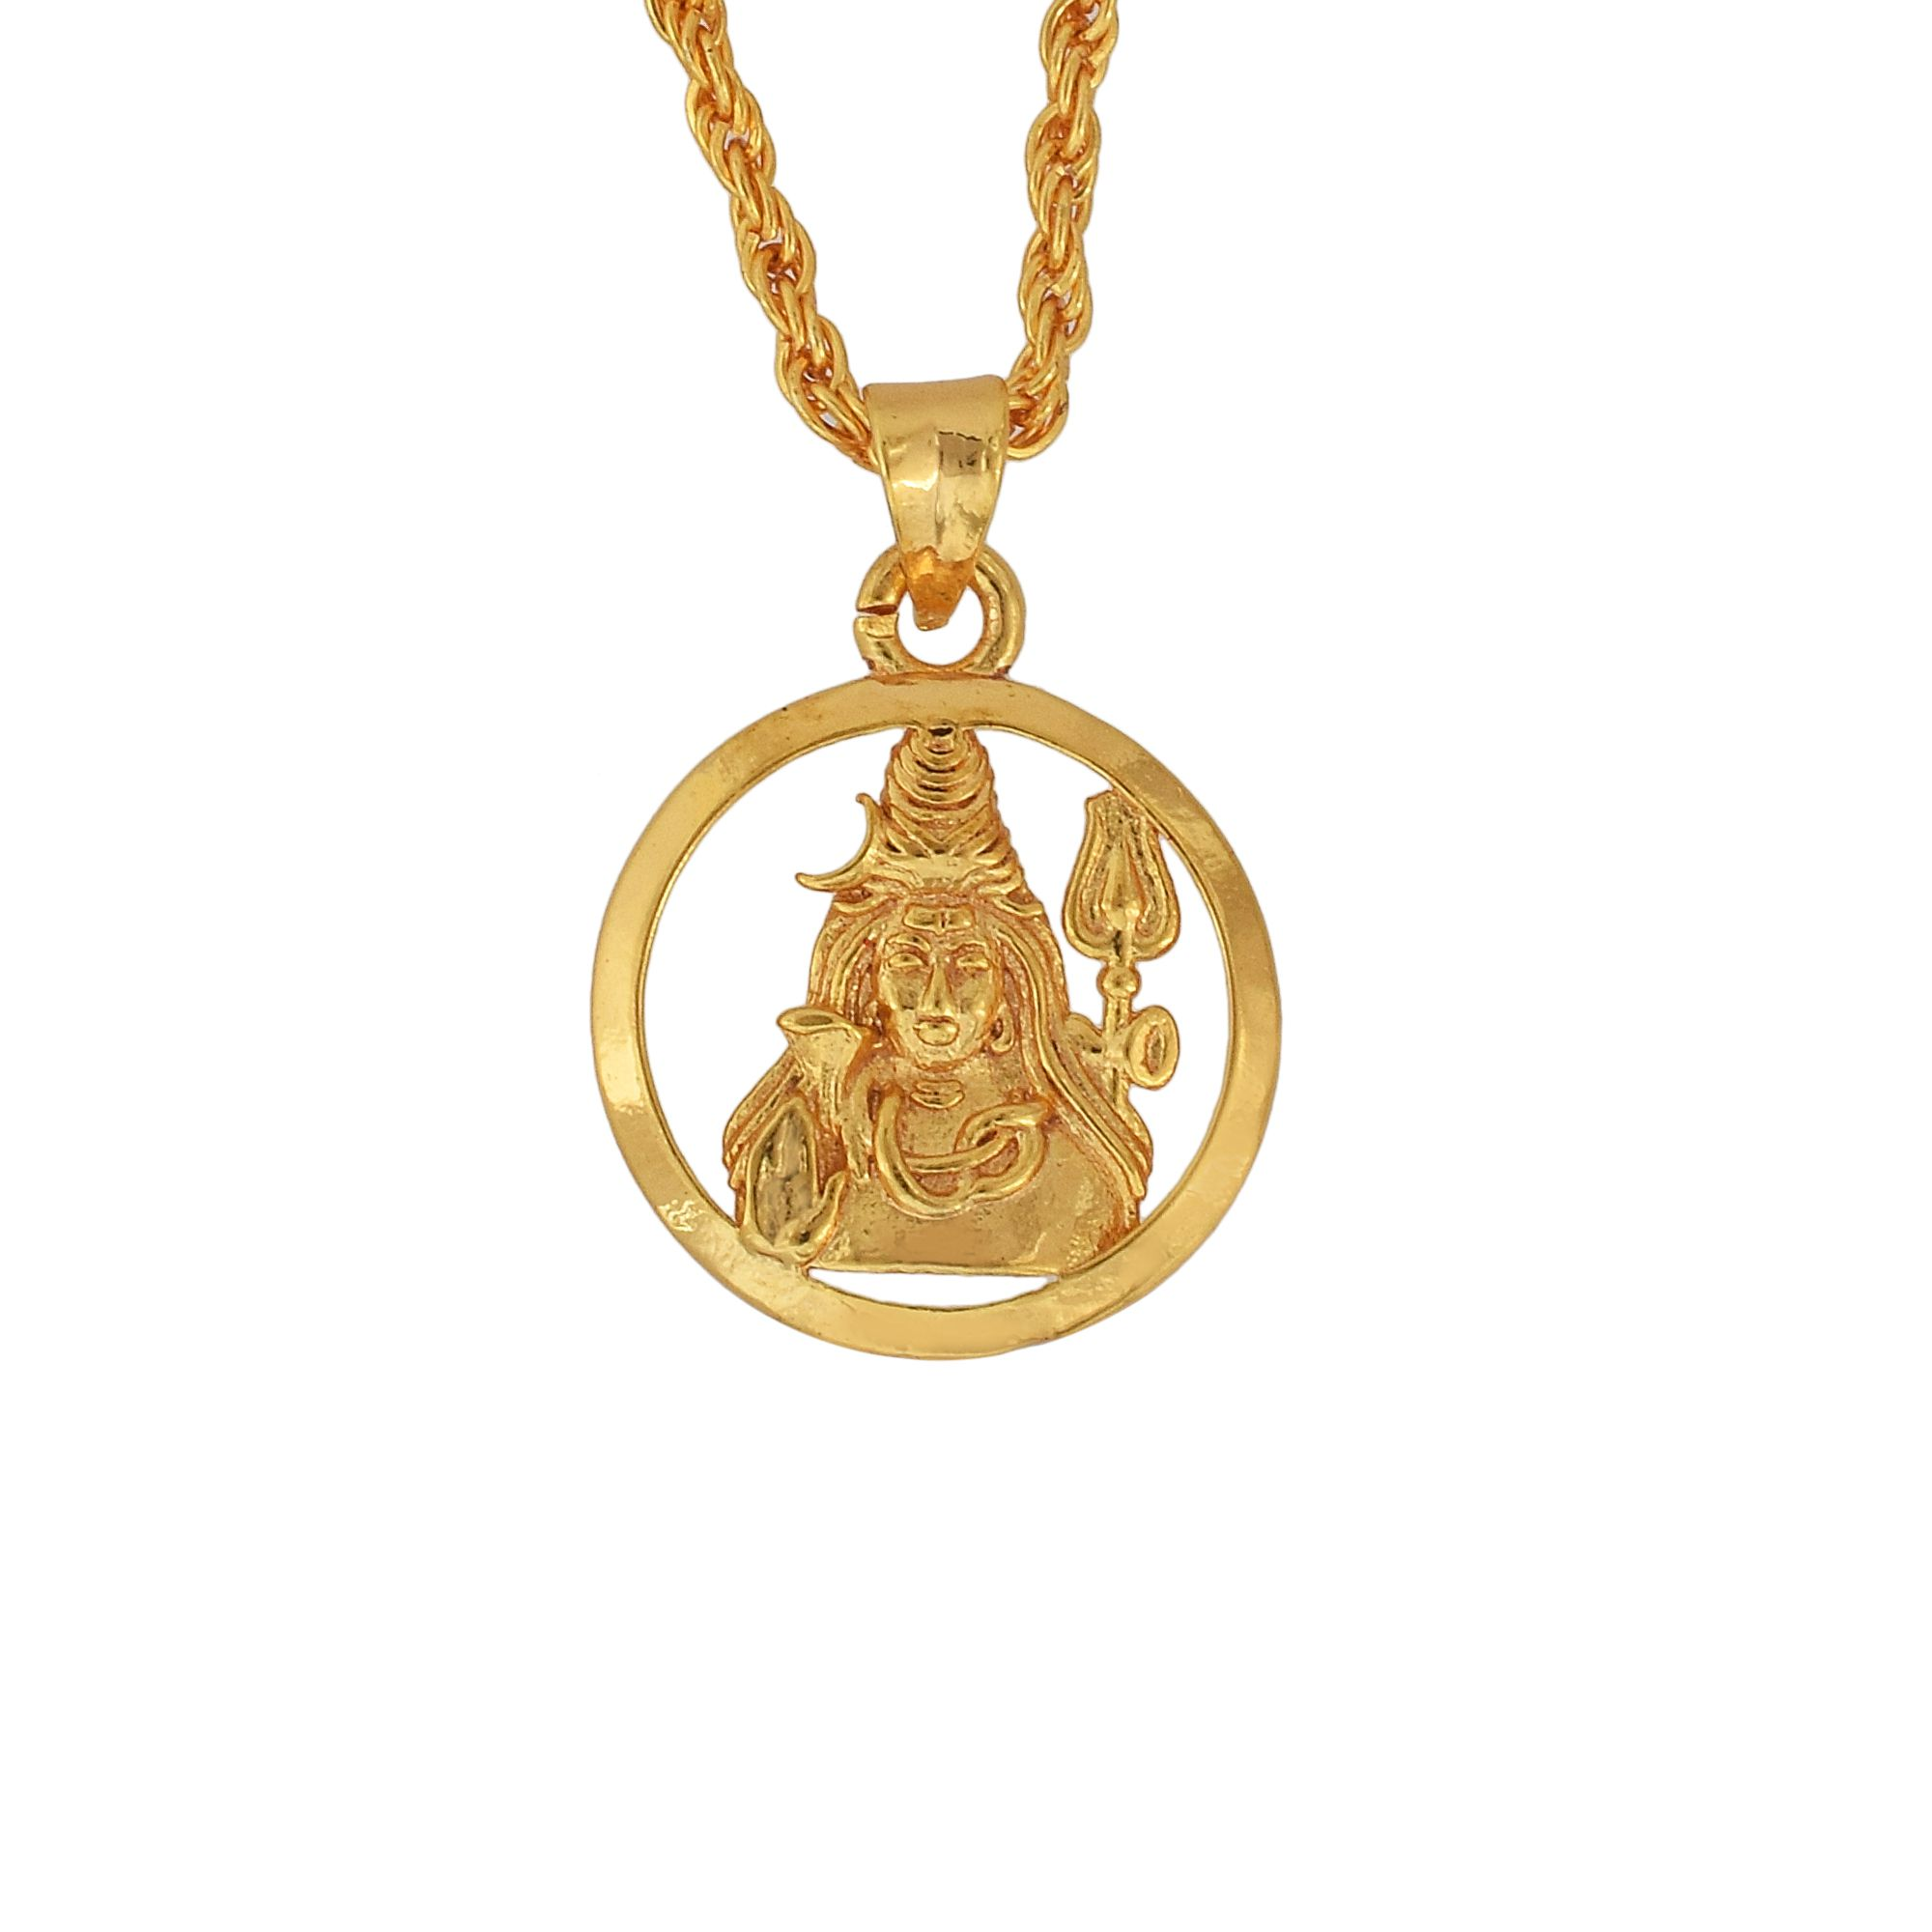 women jewellery gifts with ganesha diamond amazon ganapati contemporary god lockets dp men chain american pendant in cz pendants for